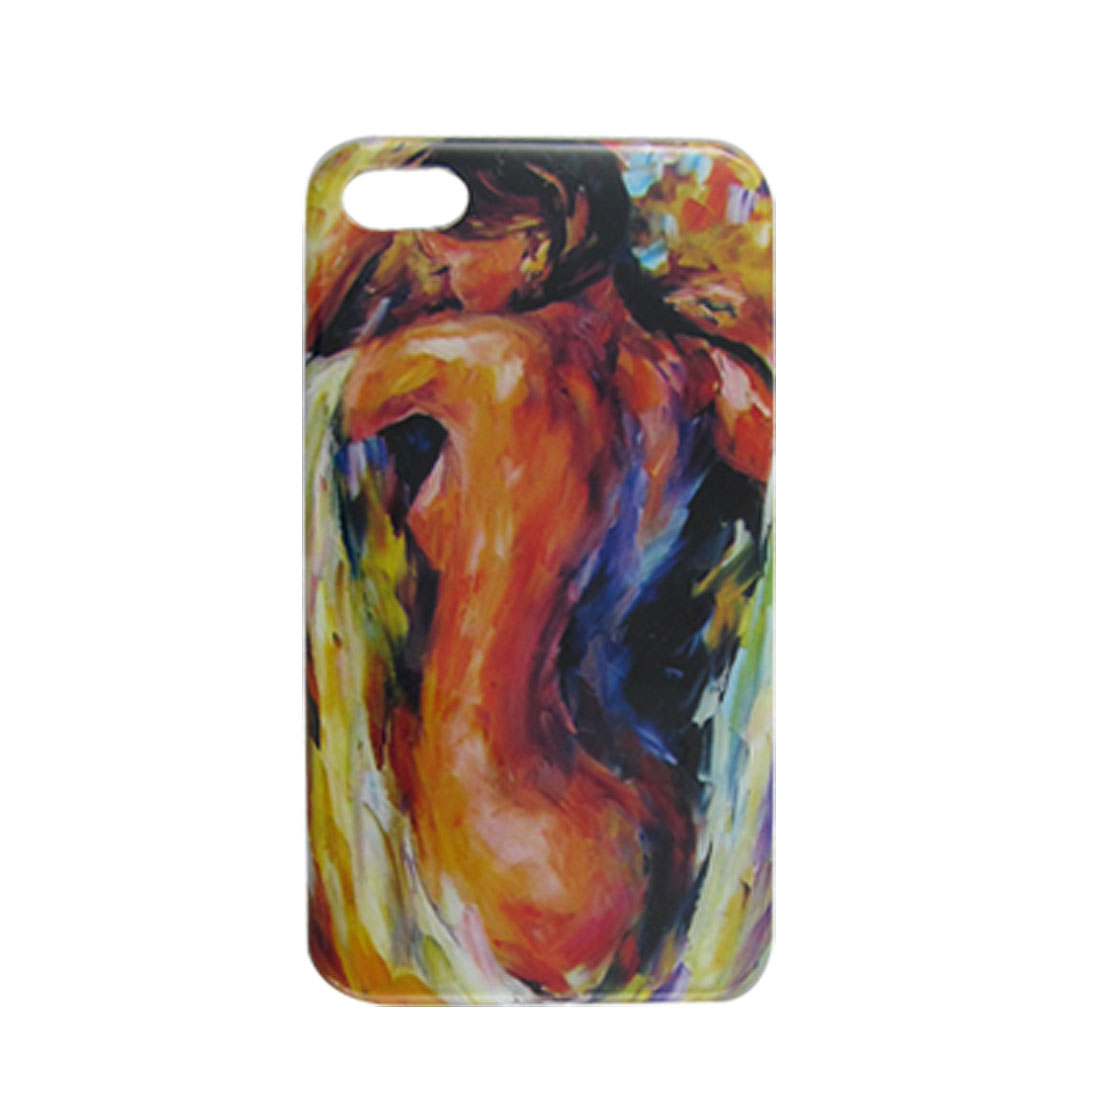 IMD Watercolour Hard Plastic Back Case for iPhone 4 4G 4S